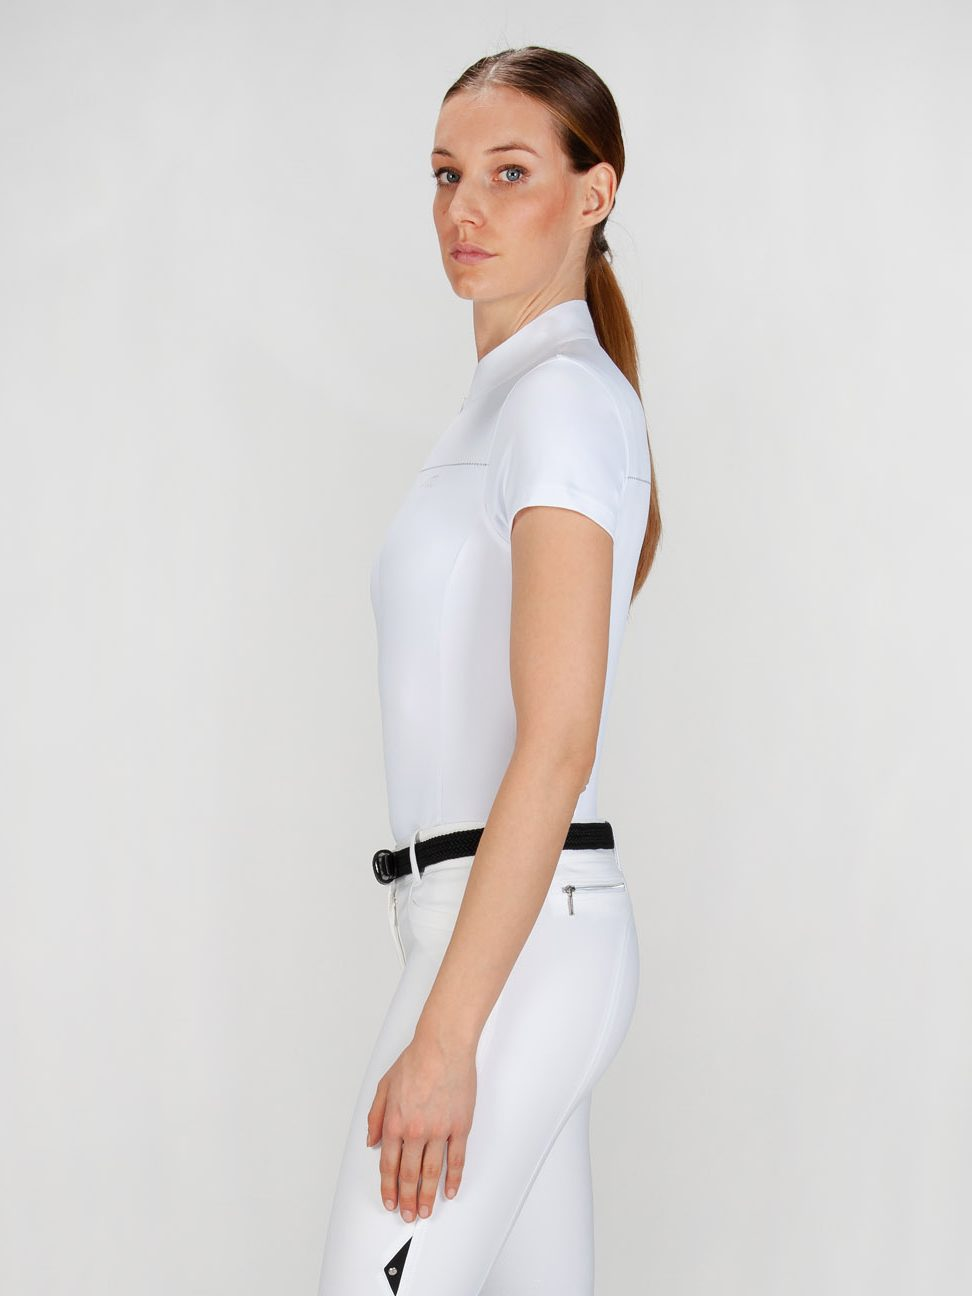 CATHERINE - Women's Show Shirt w/ Silver Detail 3